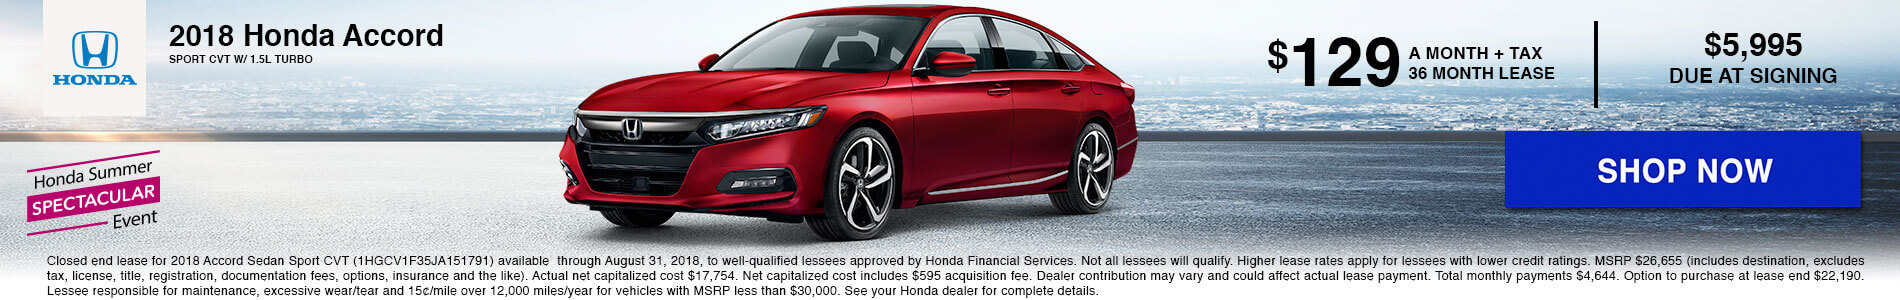 Accord Lease $129